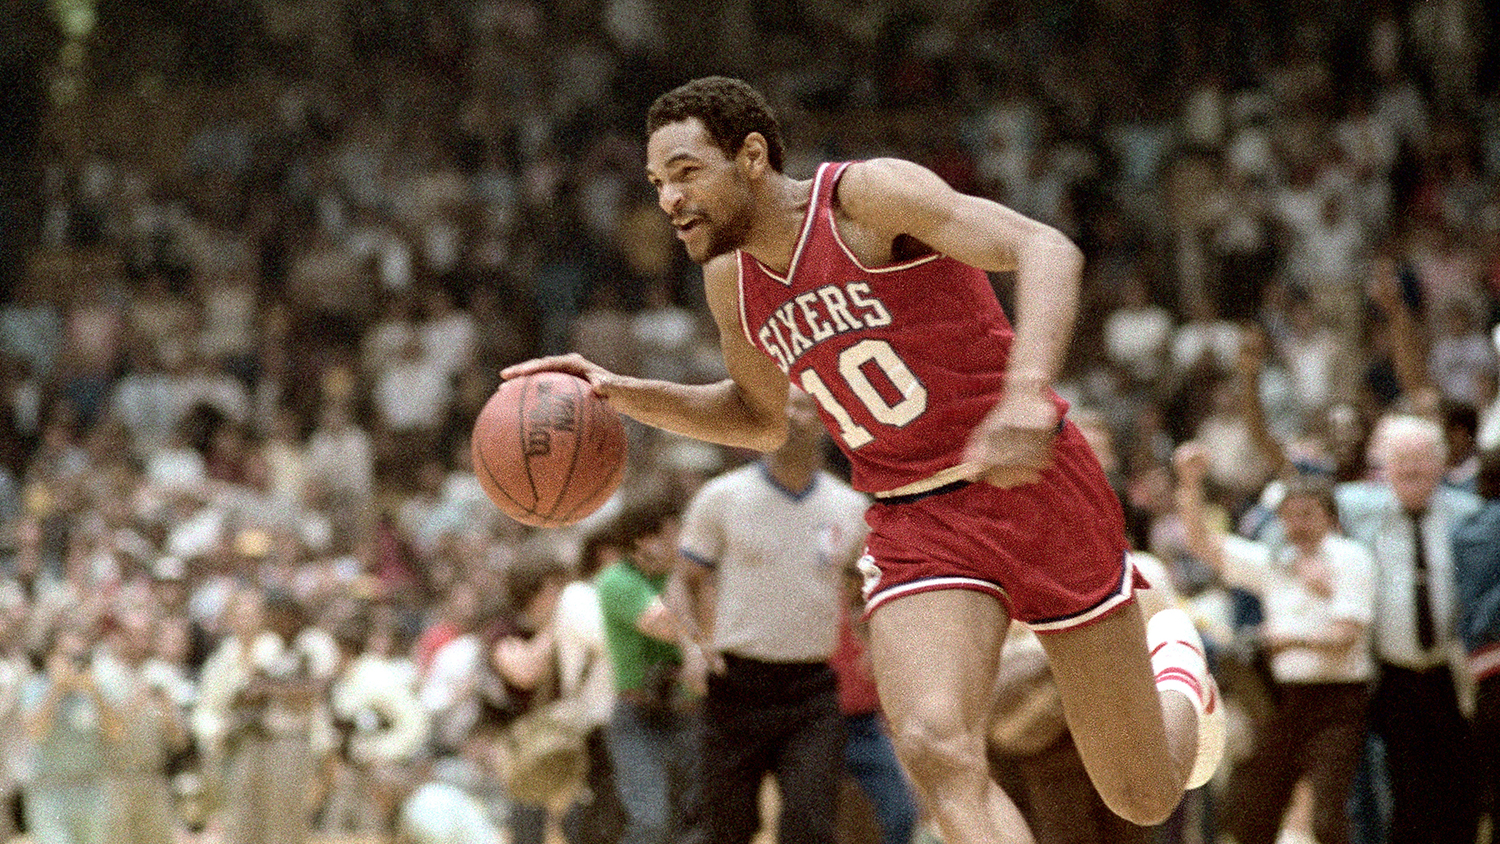 Sixers were at their apex as a franchise when Moses Malone lifted them to the top